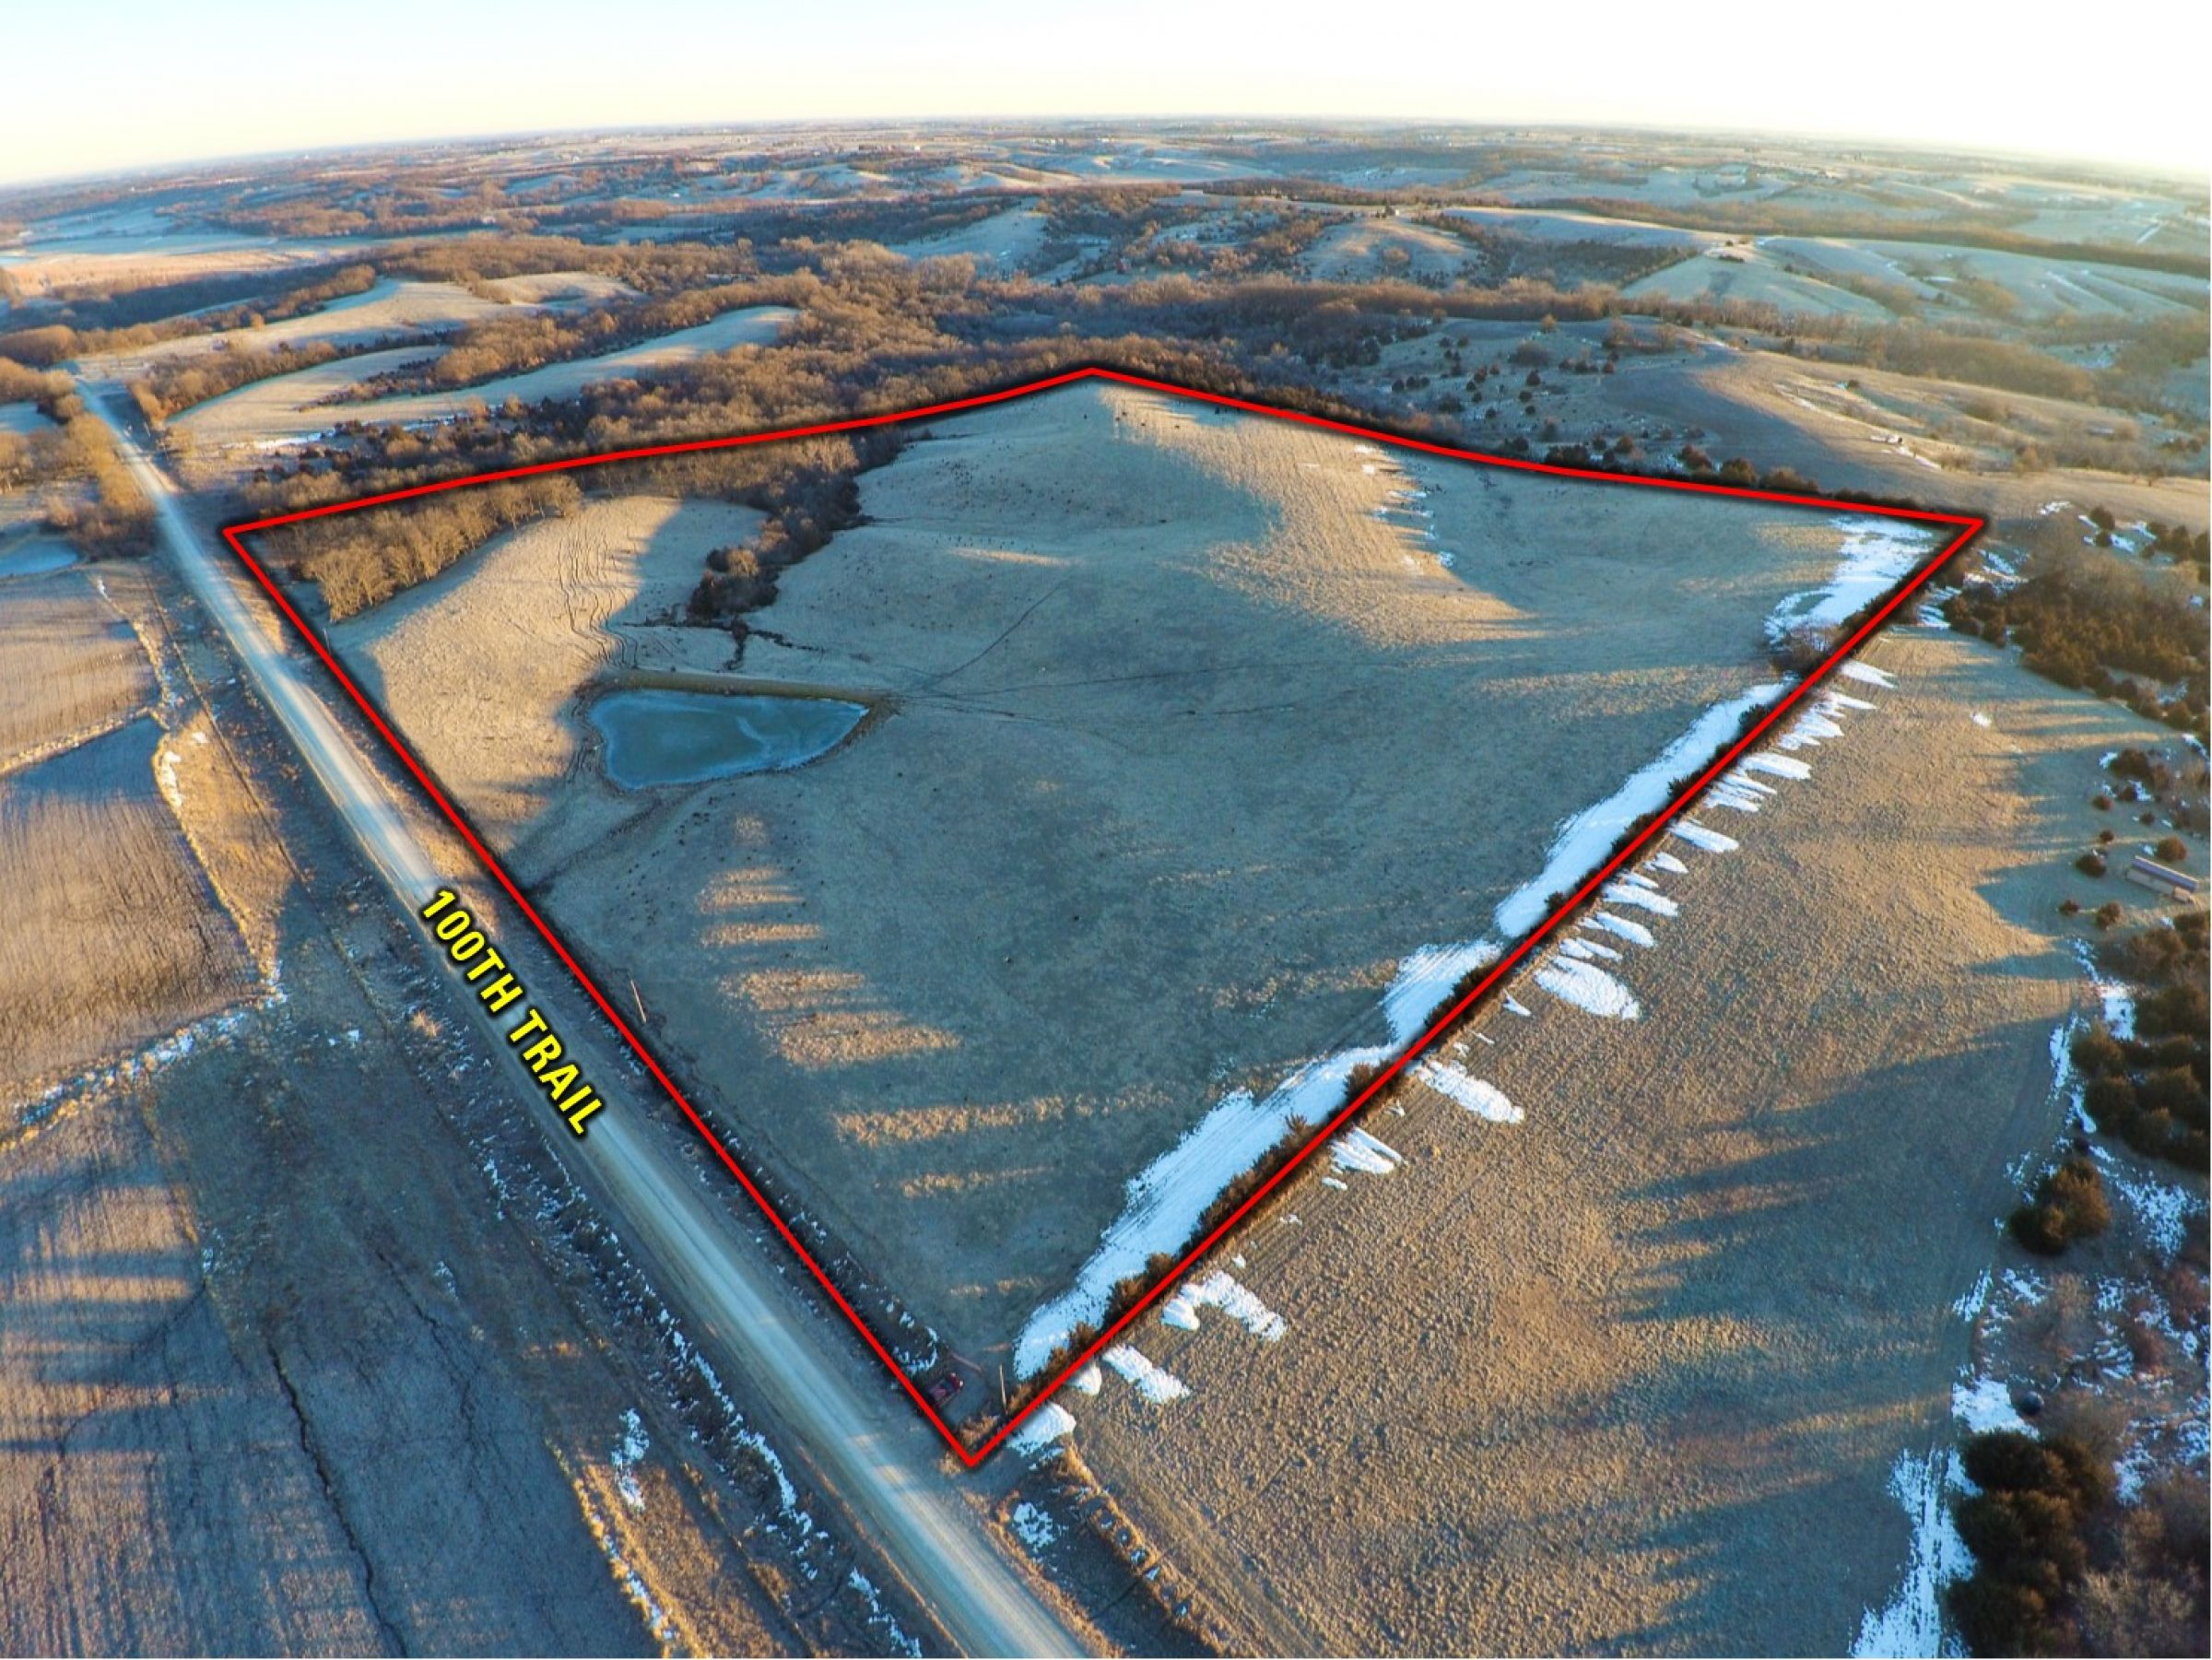 Peoples Company Land for Sale Lucas County Iowa, 110th Trail, Norwood, IA 50151Peoples Company Land for Sale Lucas County Iowa, 110th Trail, Norwood, IA 50151